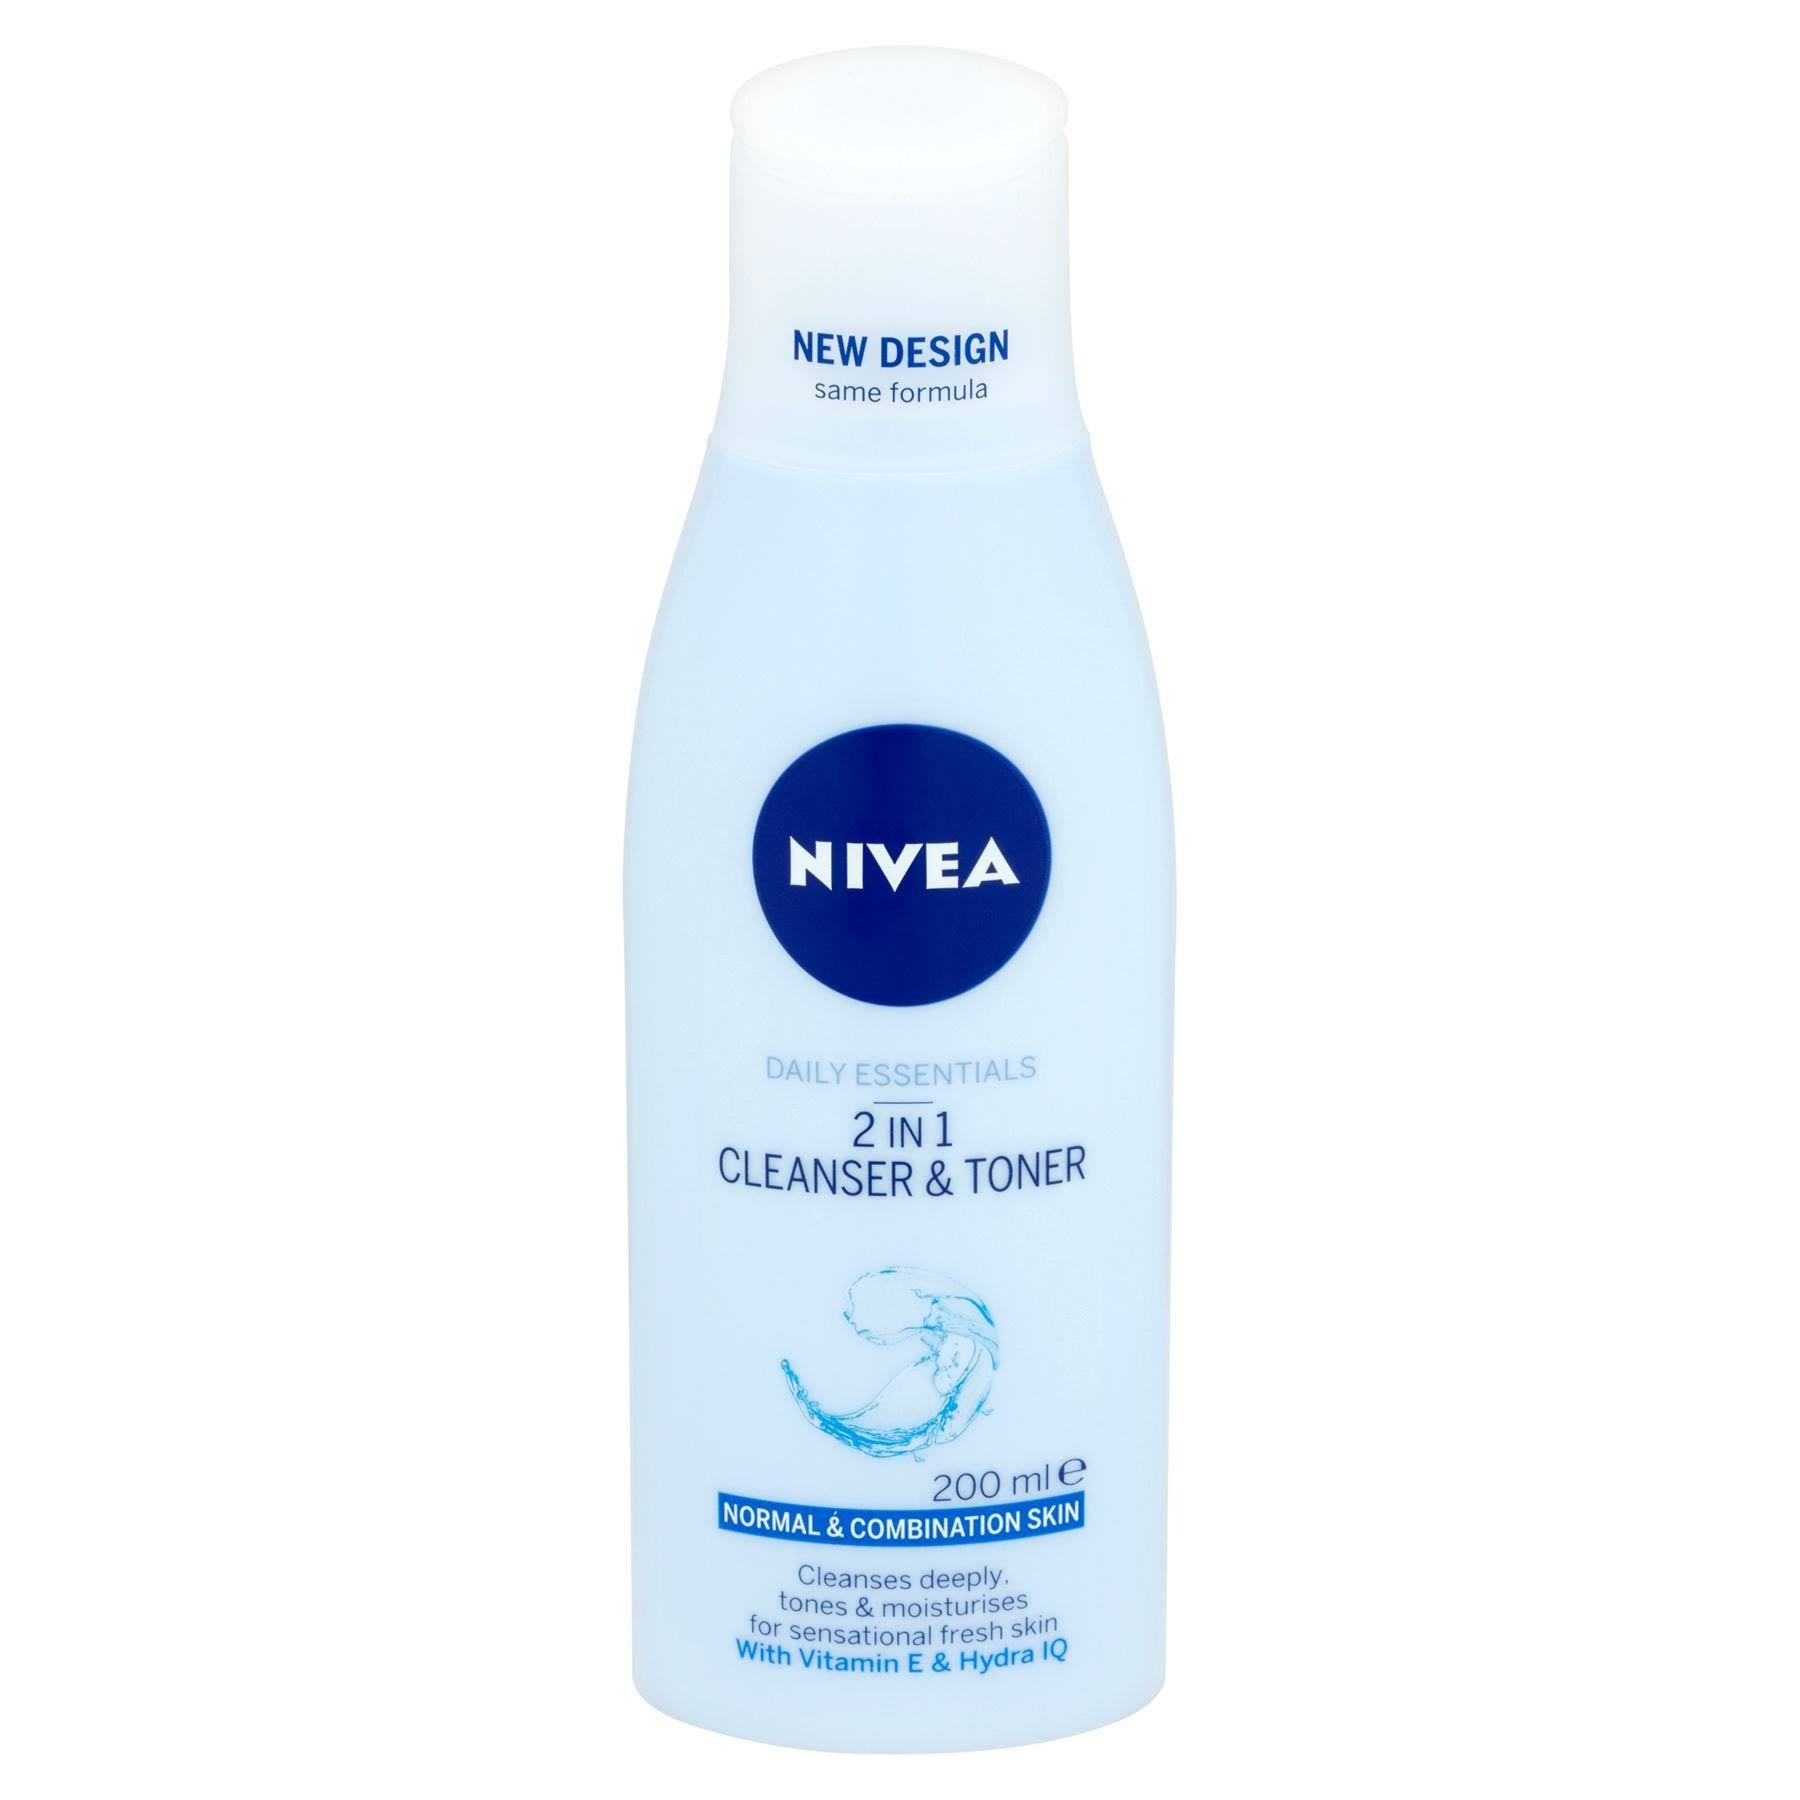 Nivea 2-in-1 Cleanser & Toner 200 ml